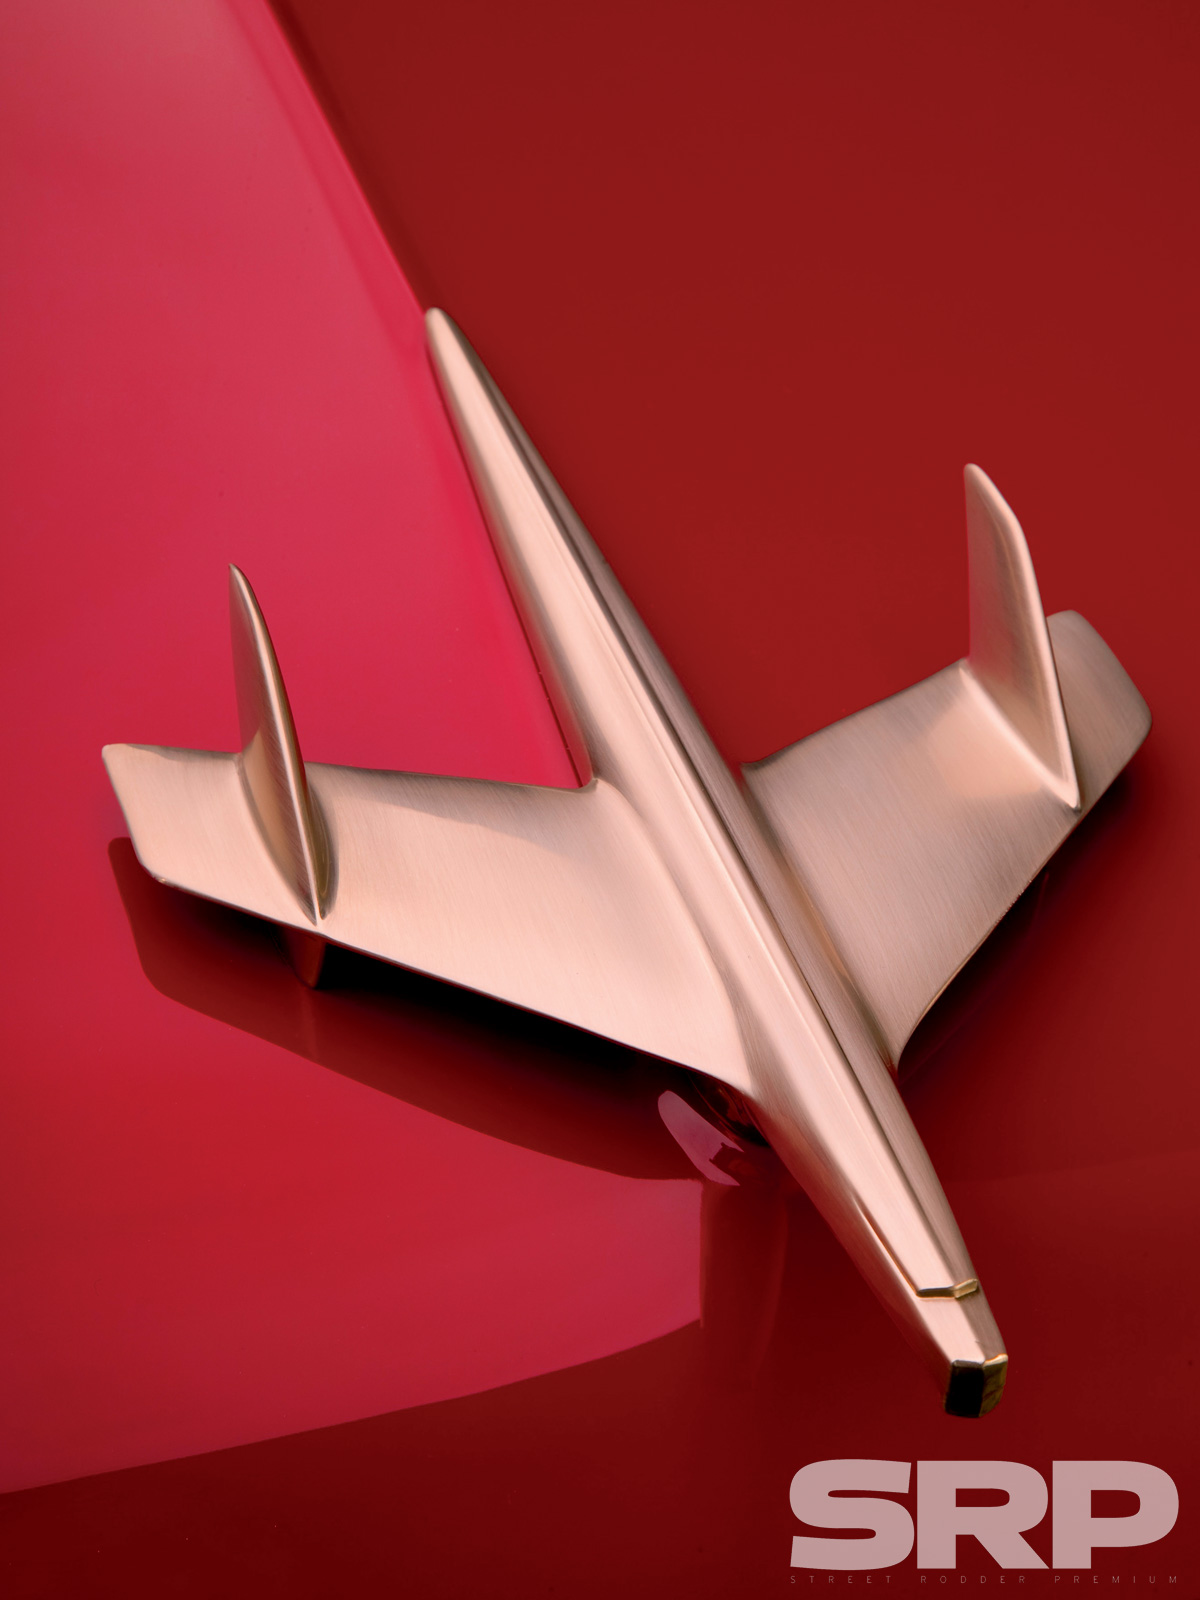 1955 Chevrolet 210 Sedan Hood Ornament